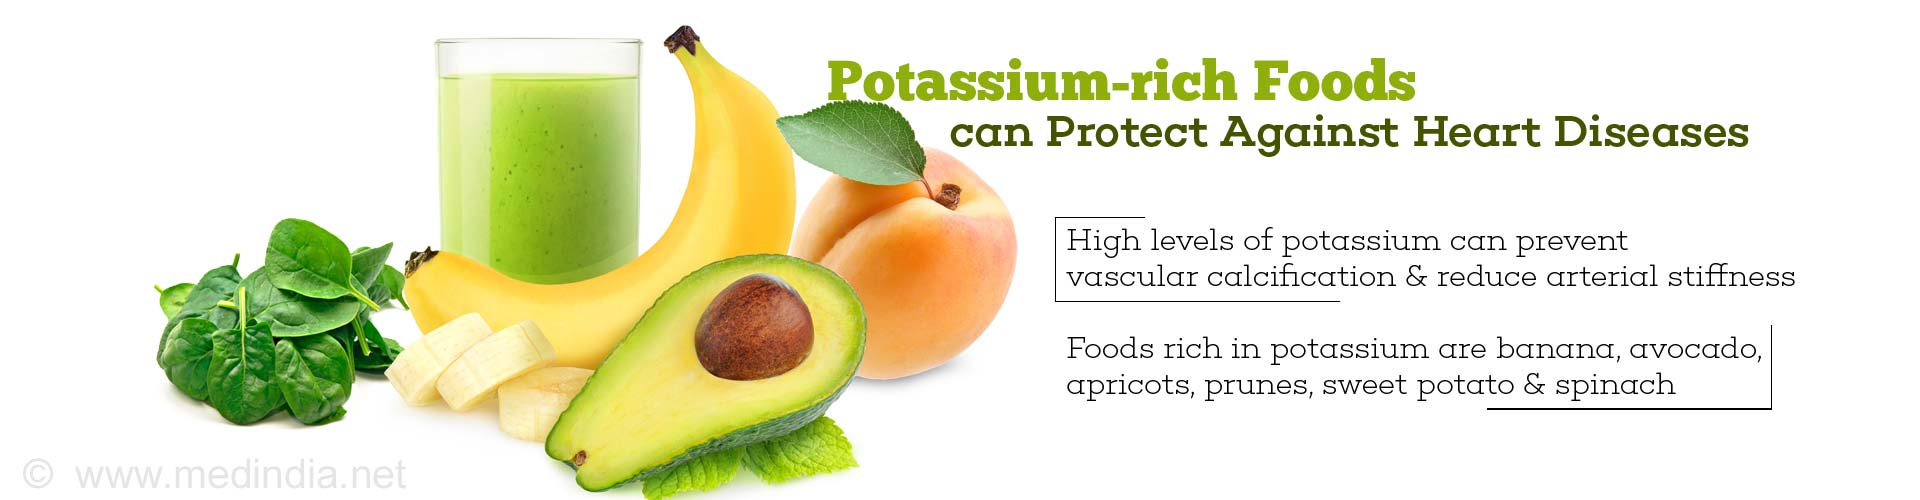 Dietary Potassium Helps Prevent Calcification of Arteries